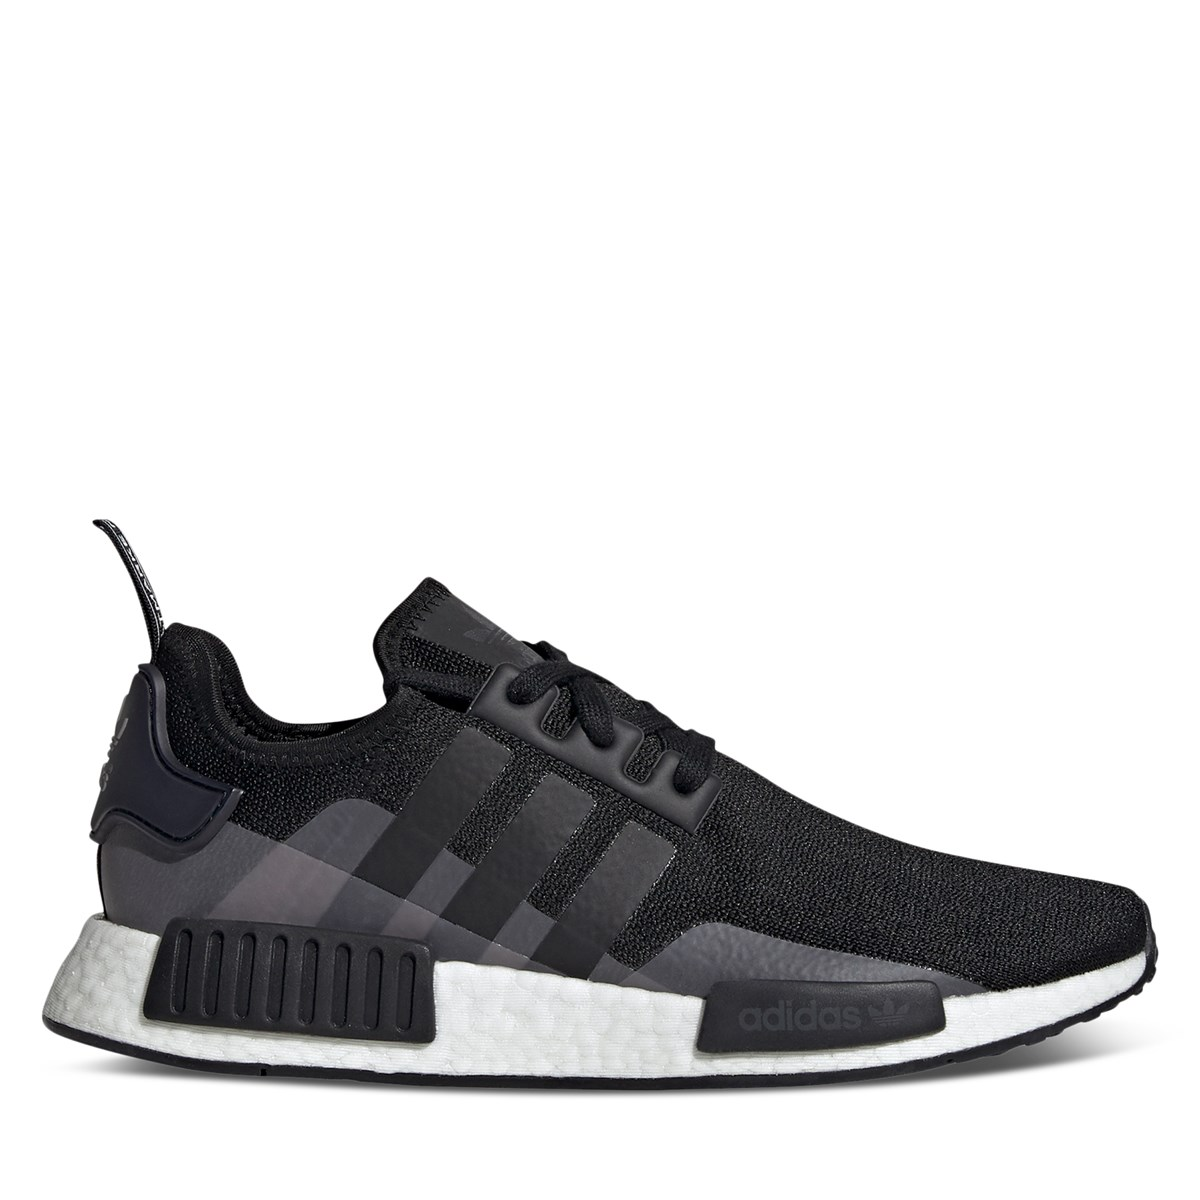 Men's NMD R1 Sneakers in Black